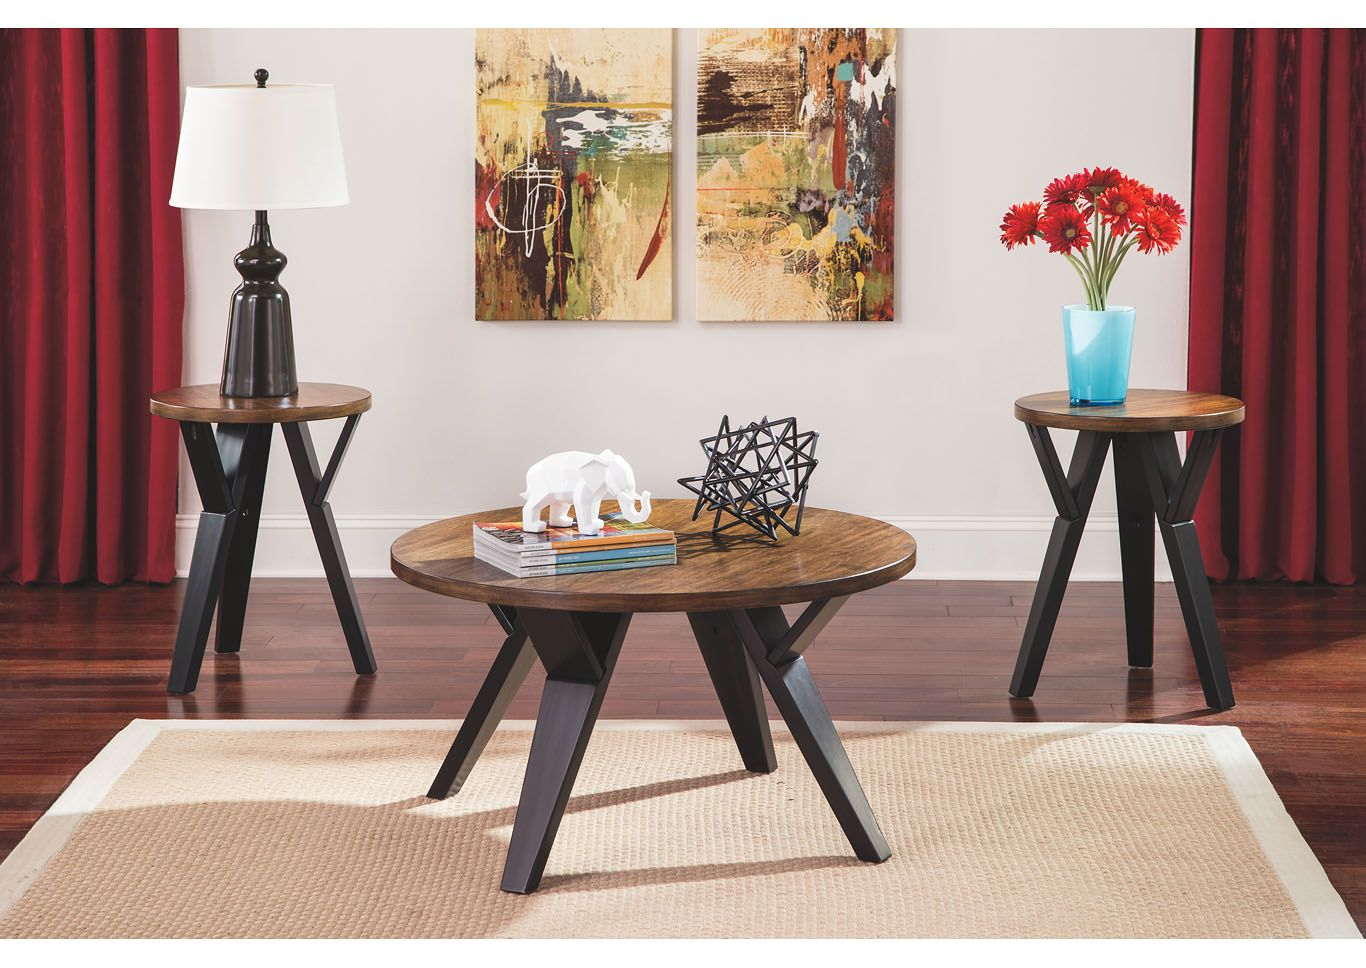 Accent Tables Buy Accent Tables Online At Best Price Ashley Furniture Homestore India Living Room Table Sets Coffee Table Coffee Table Setting [ 968 x 1366 Pixel ]